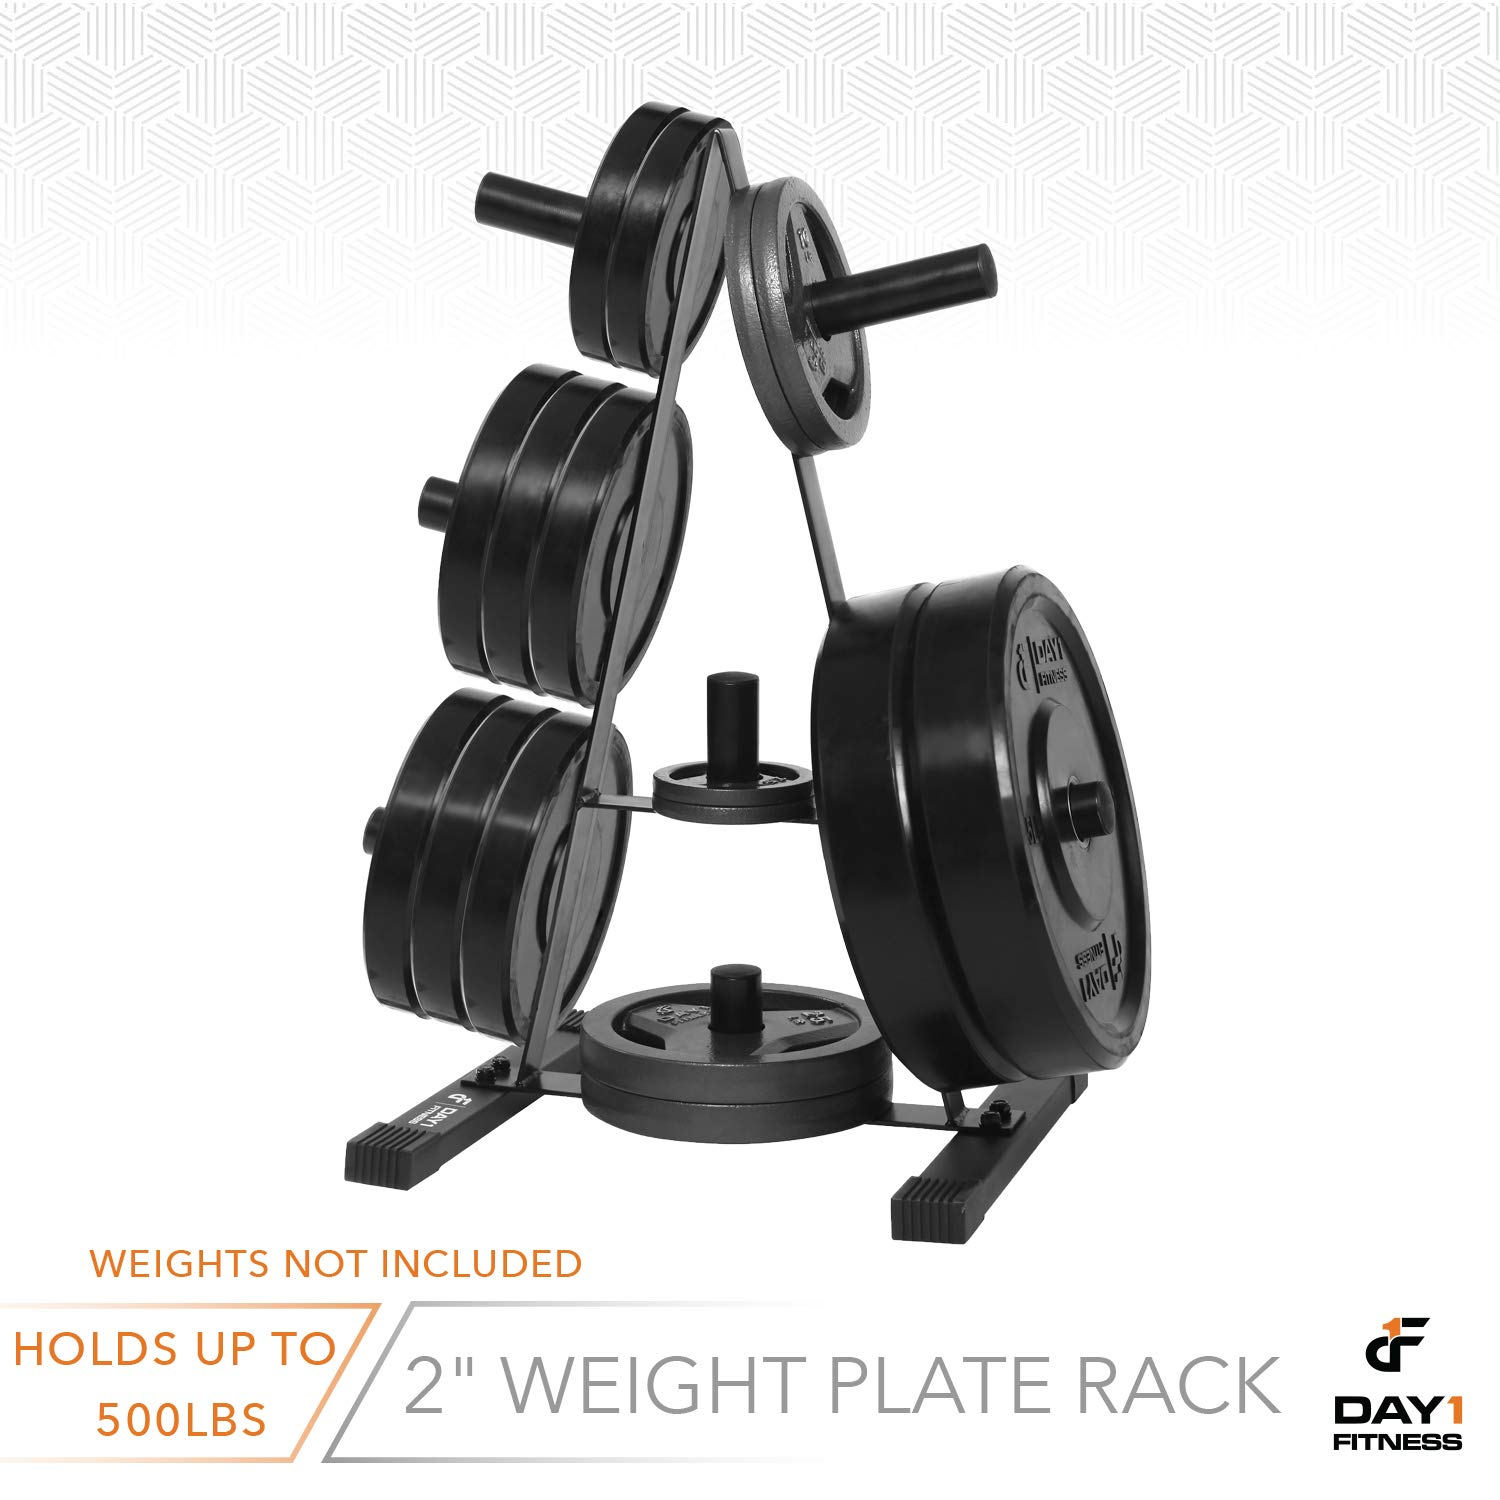 Olympic Weight Plate Rack, Holds up to 500lb of 2'' Weights by D1F - Black Weight Holder Tree with 7 Branches for Stacking and Storing High Capacity Weights- Heavy-Duty, Durable Triangle Plate Racks by Day 1 Fitness (Image #7)